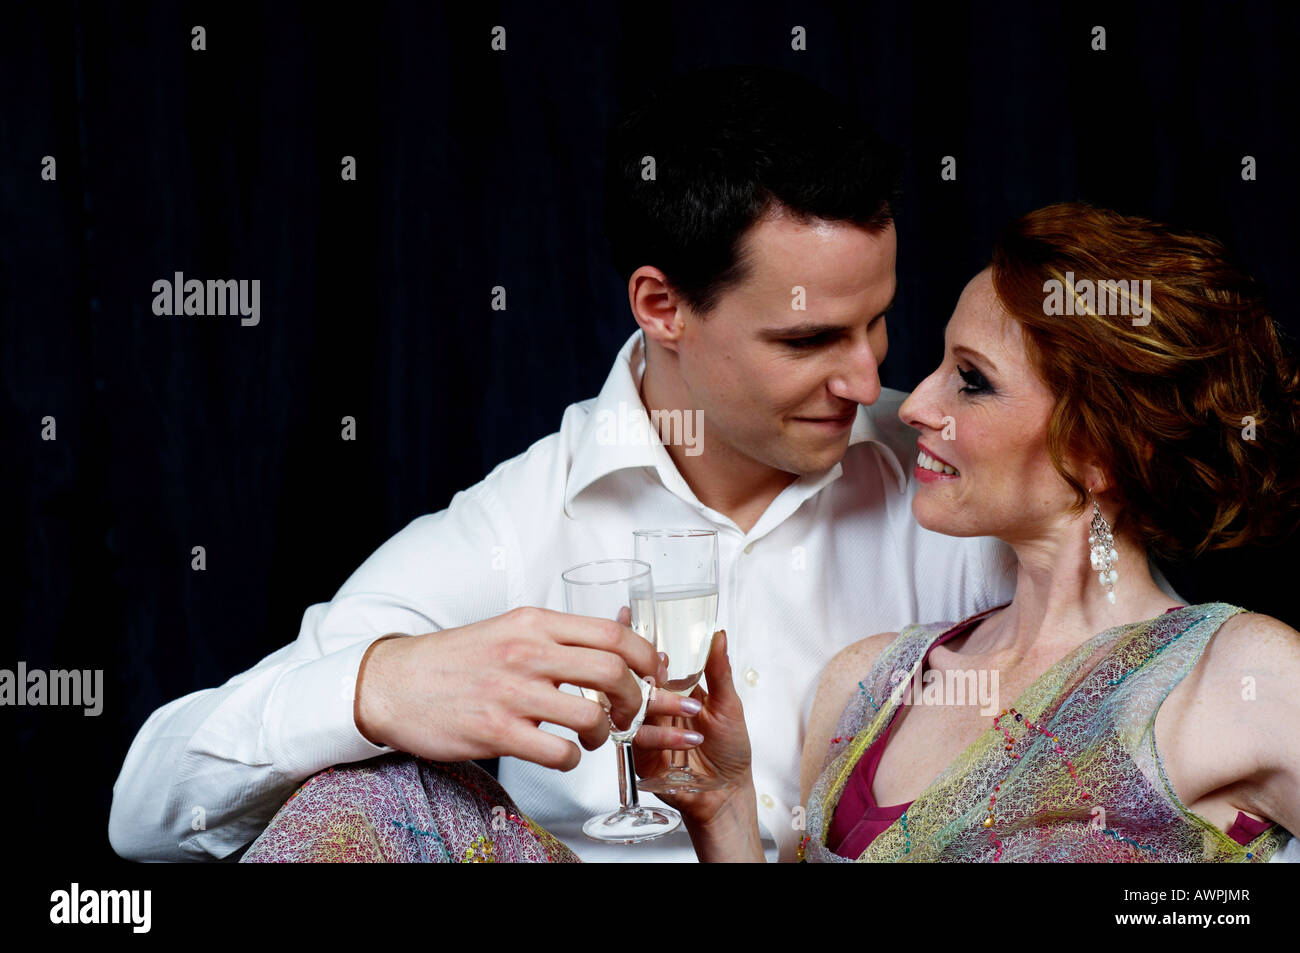 9cef2856ef55 Couple dressed in evening wear, caressing one another Stock Photo ...